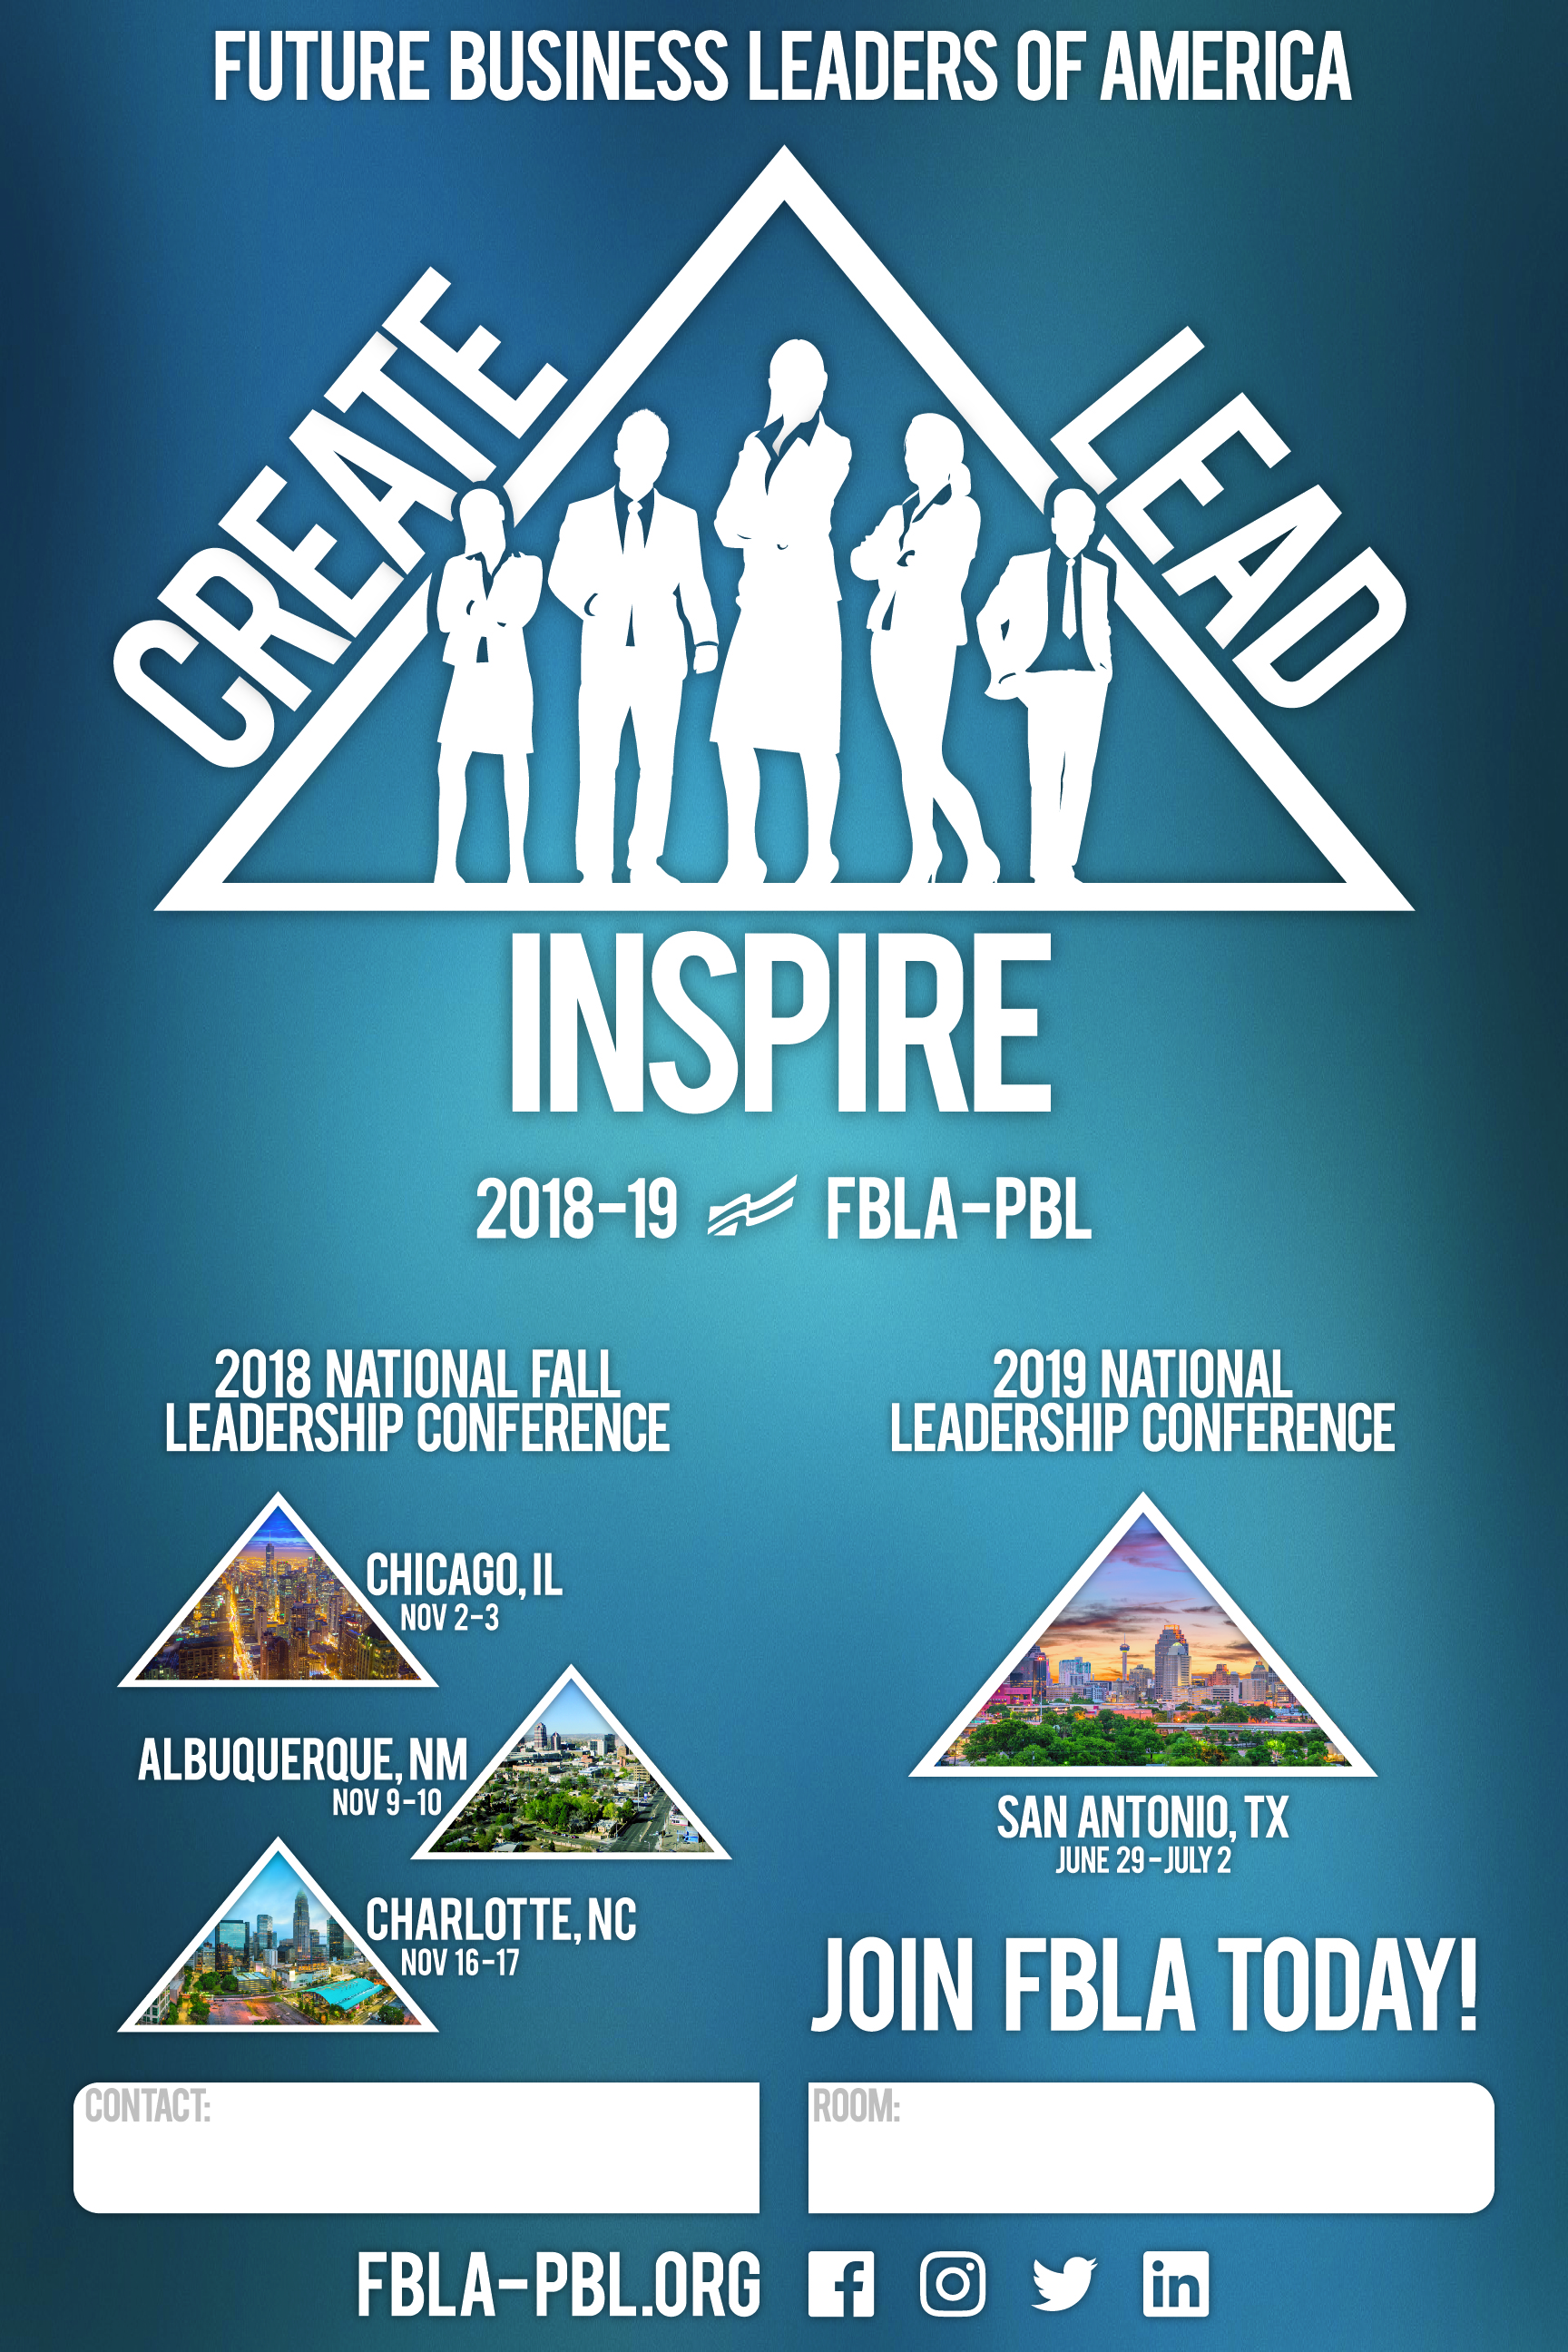 download fbla pbl logos images official